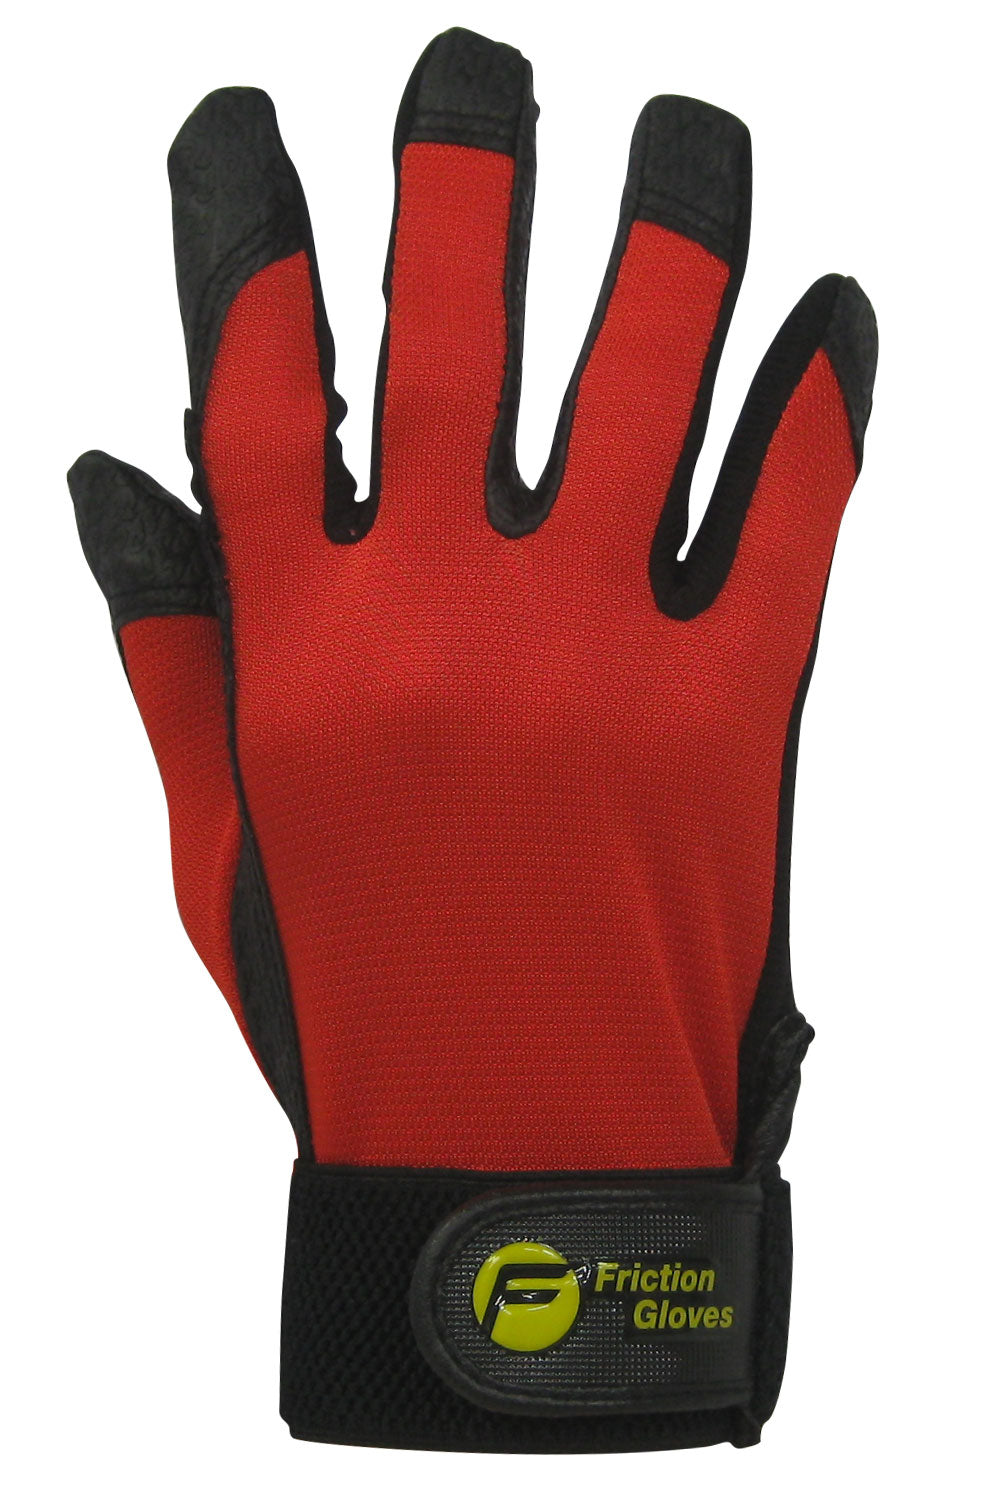 Friction Gloves 3.0 (Red)